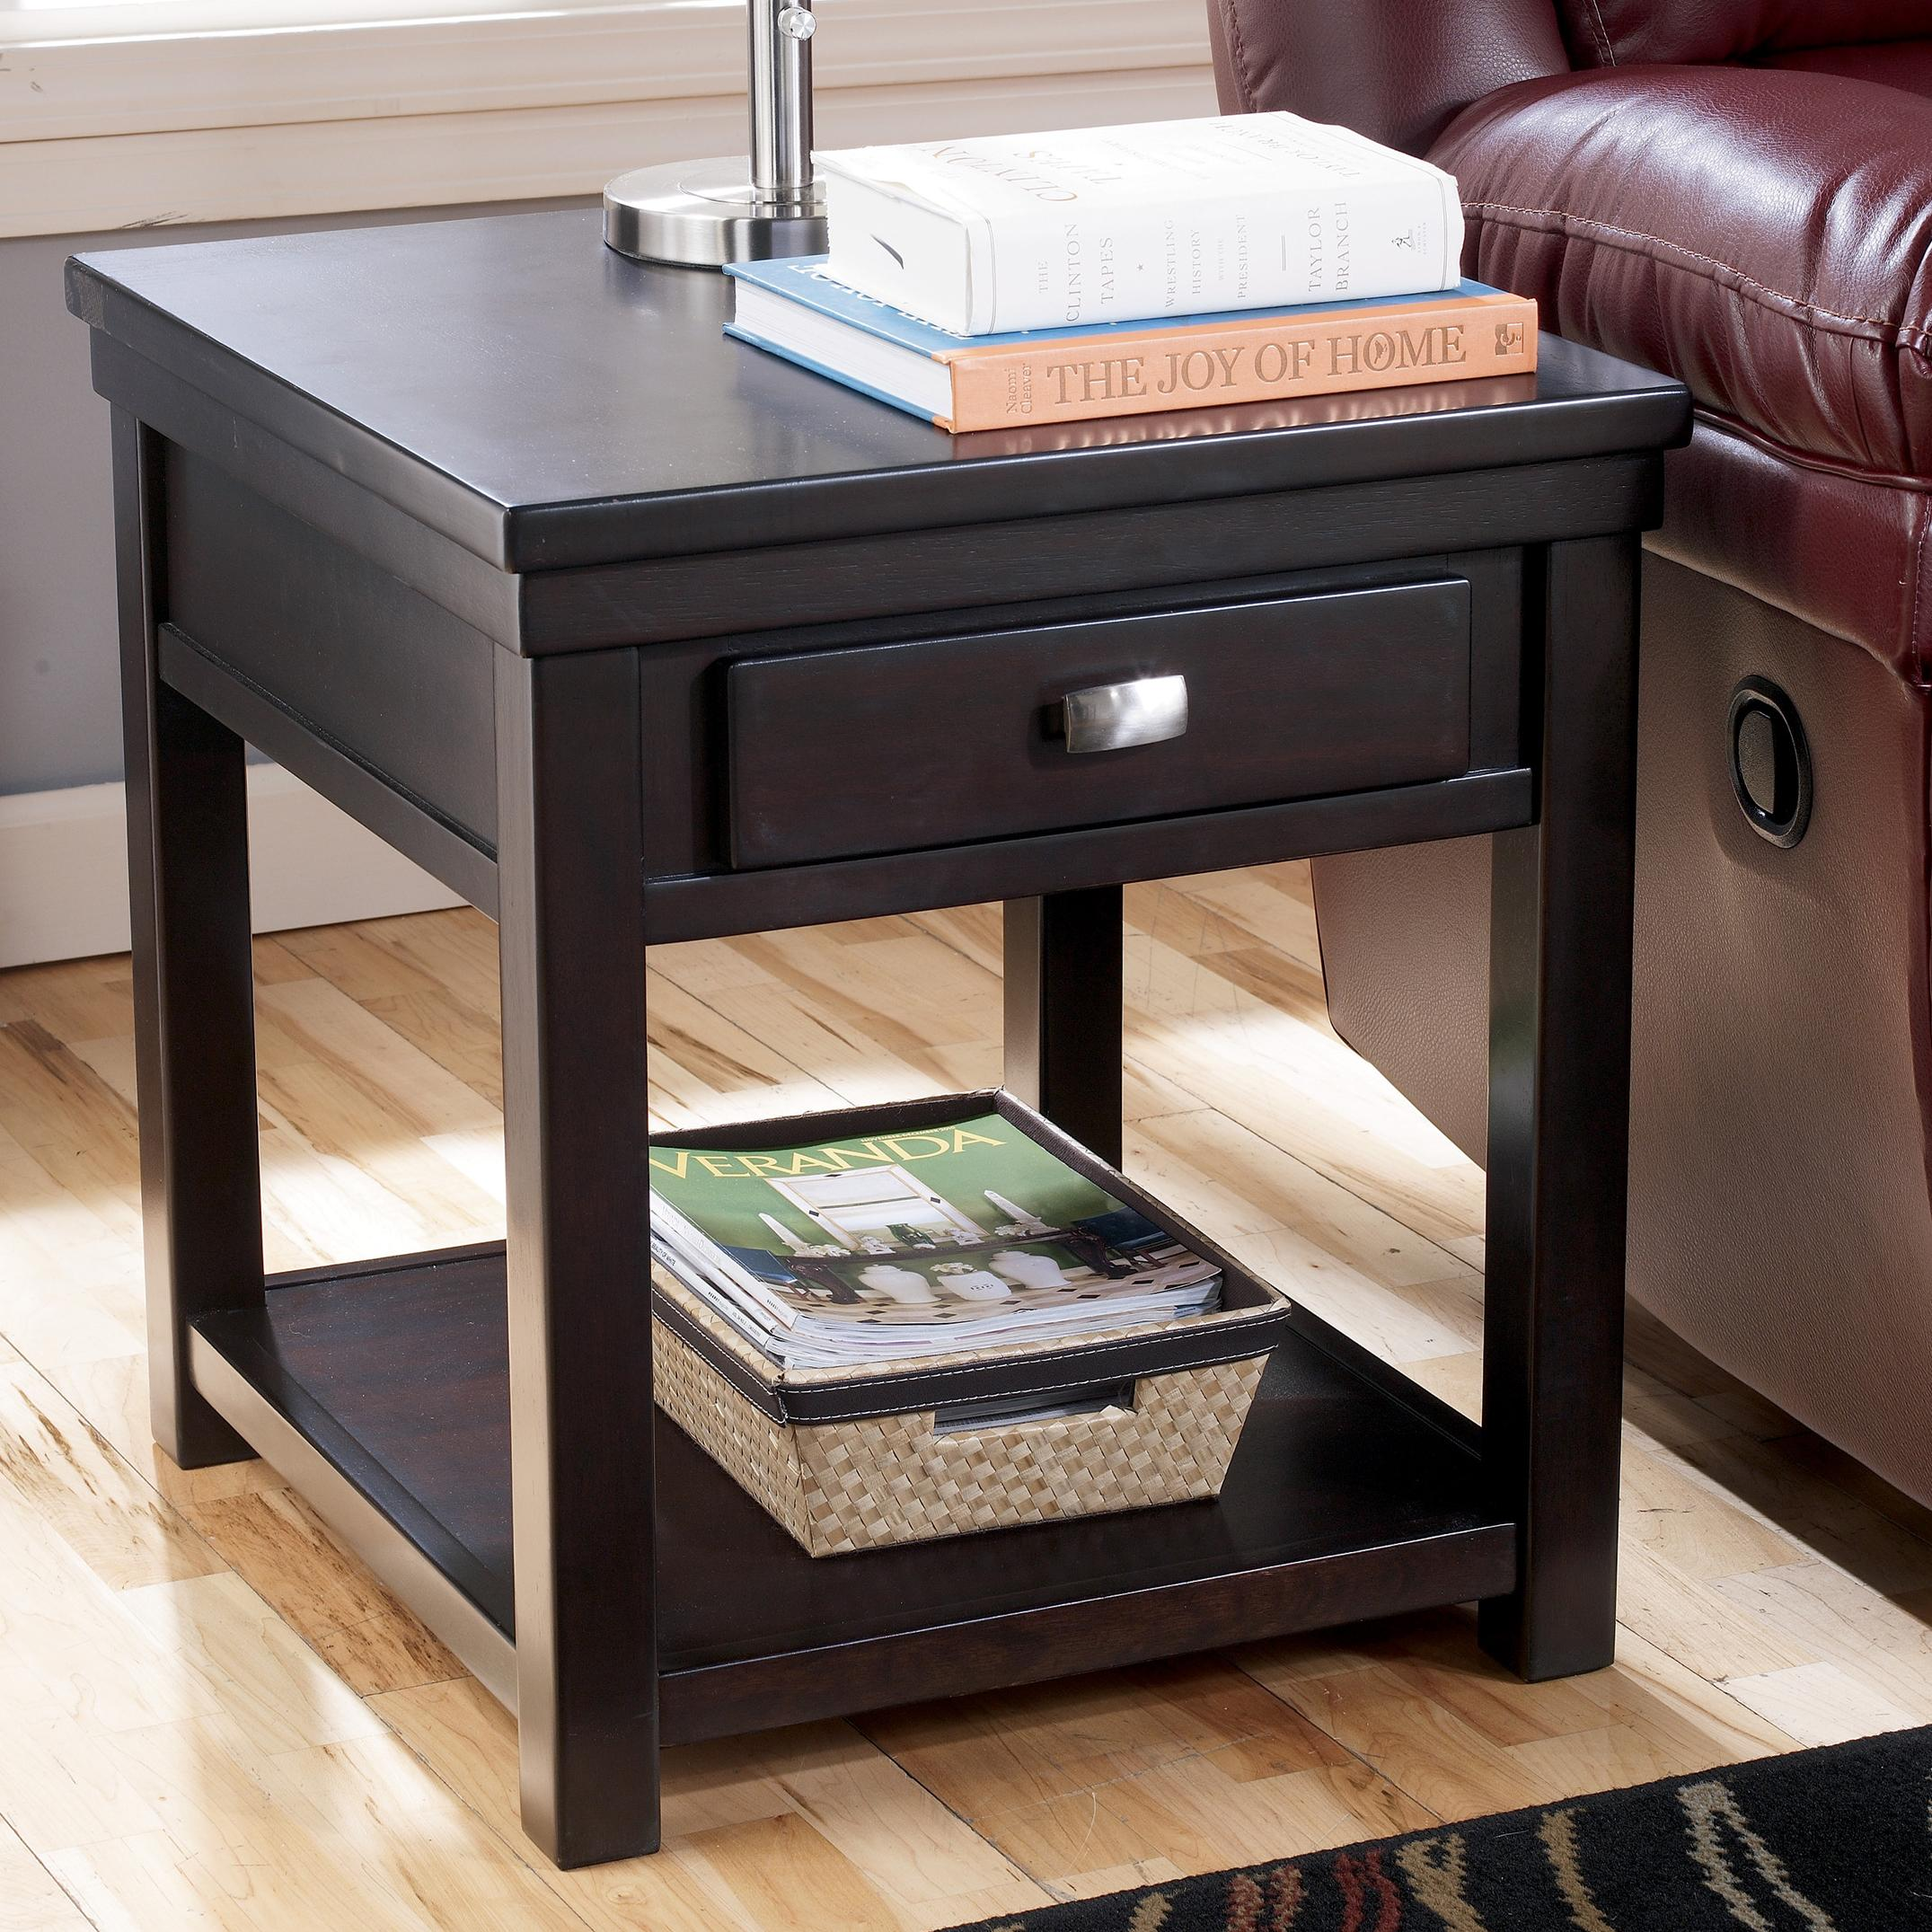 Hatsuko Rectangular End Table by Signature Design by Ashley at Pilgrim Furniture City